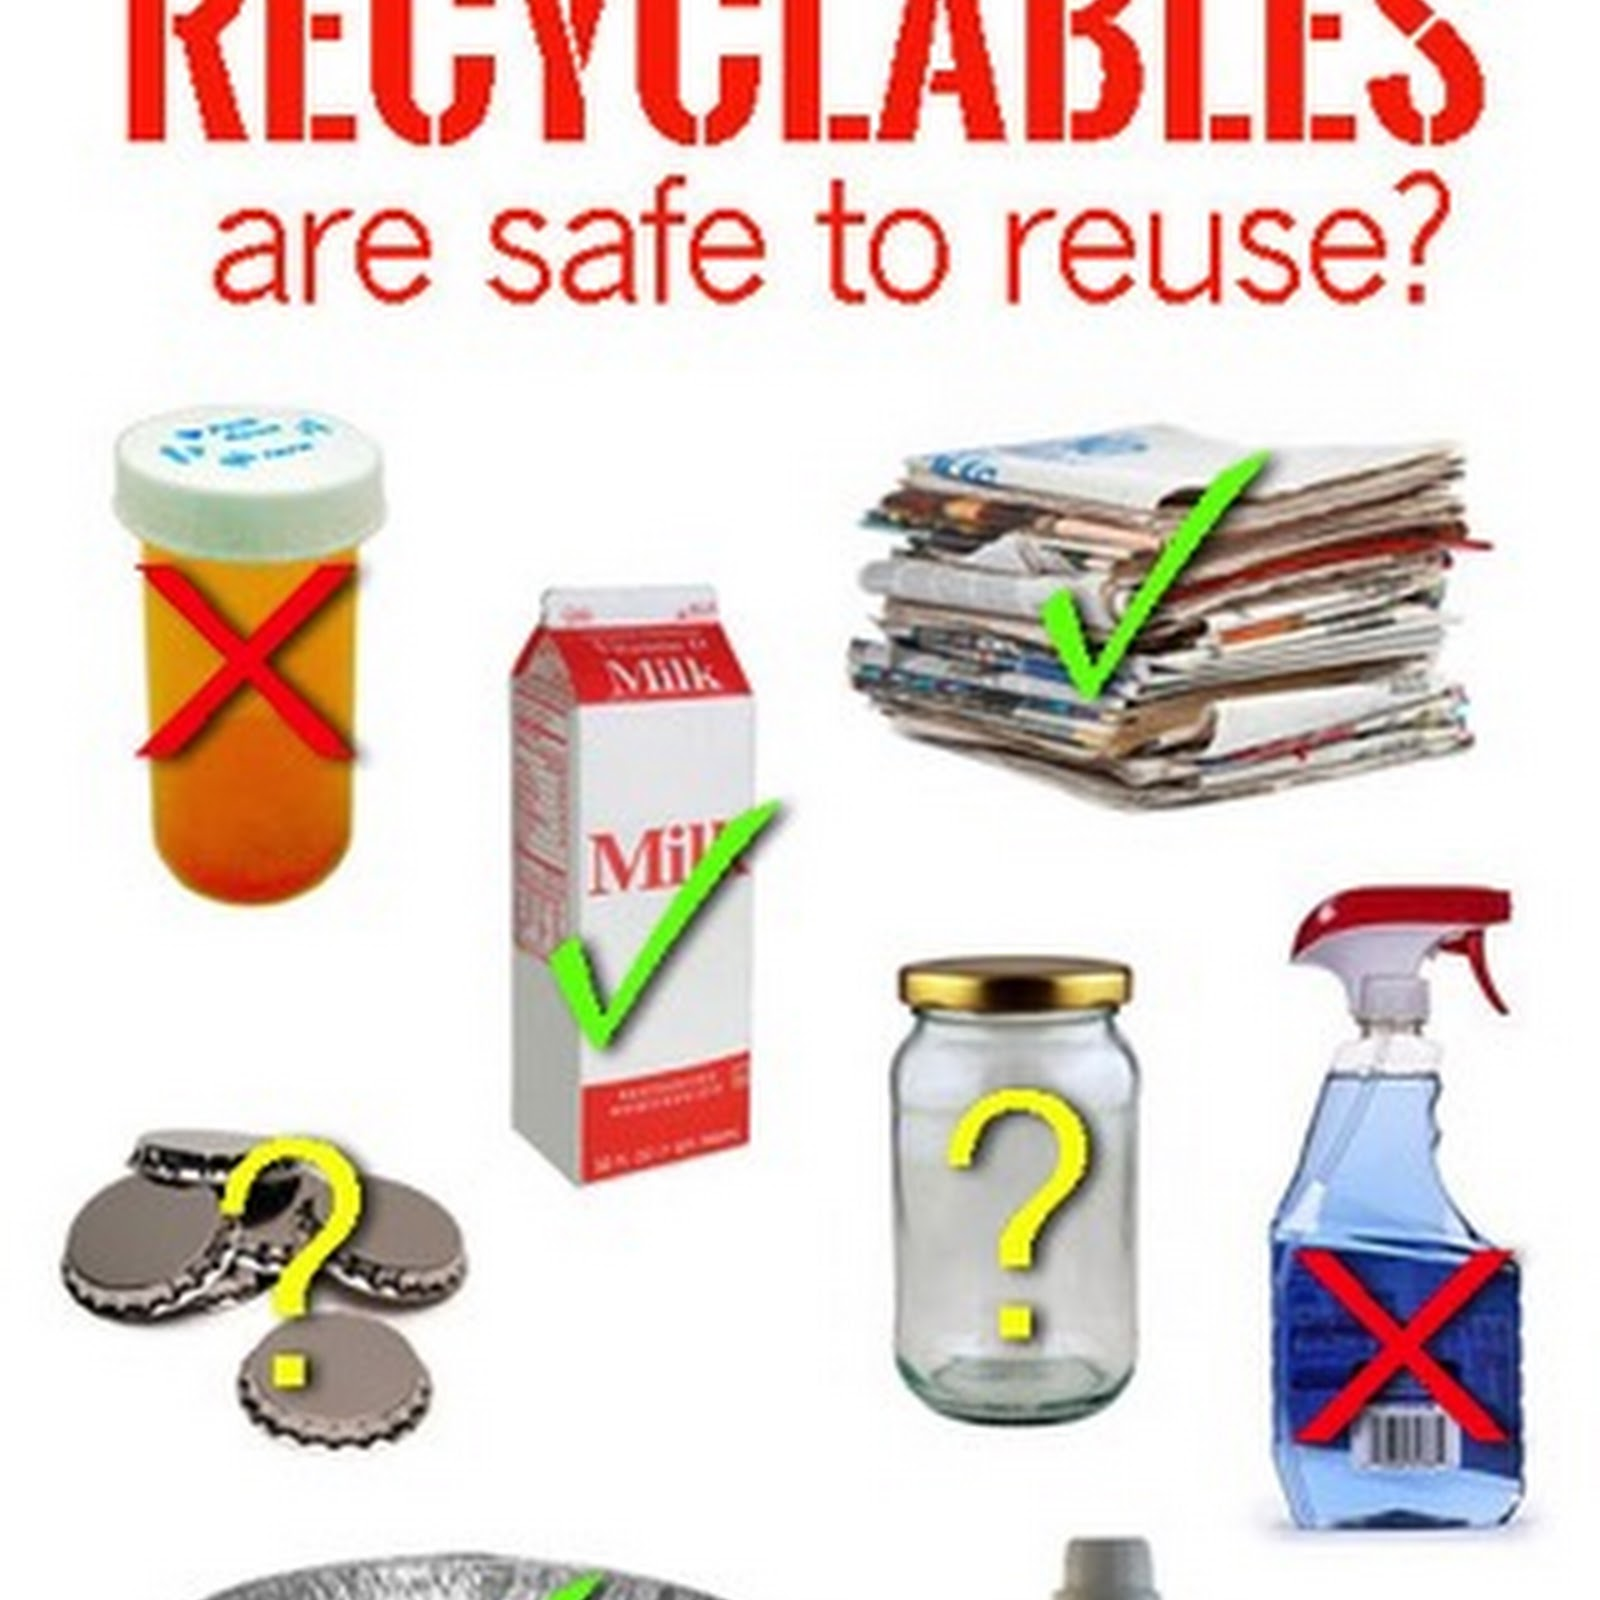 15 Recyclables You Can Repurpose and 7 You NEVER Should